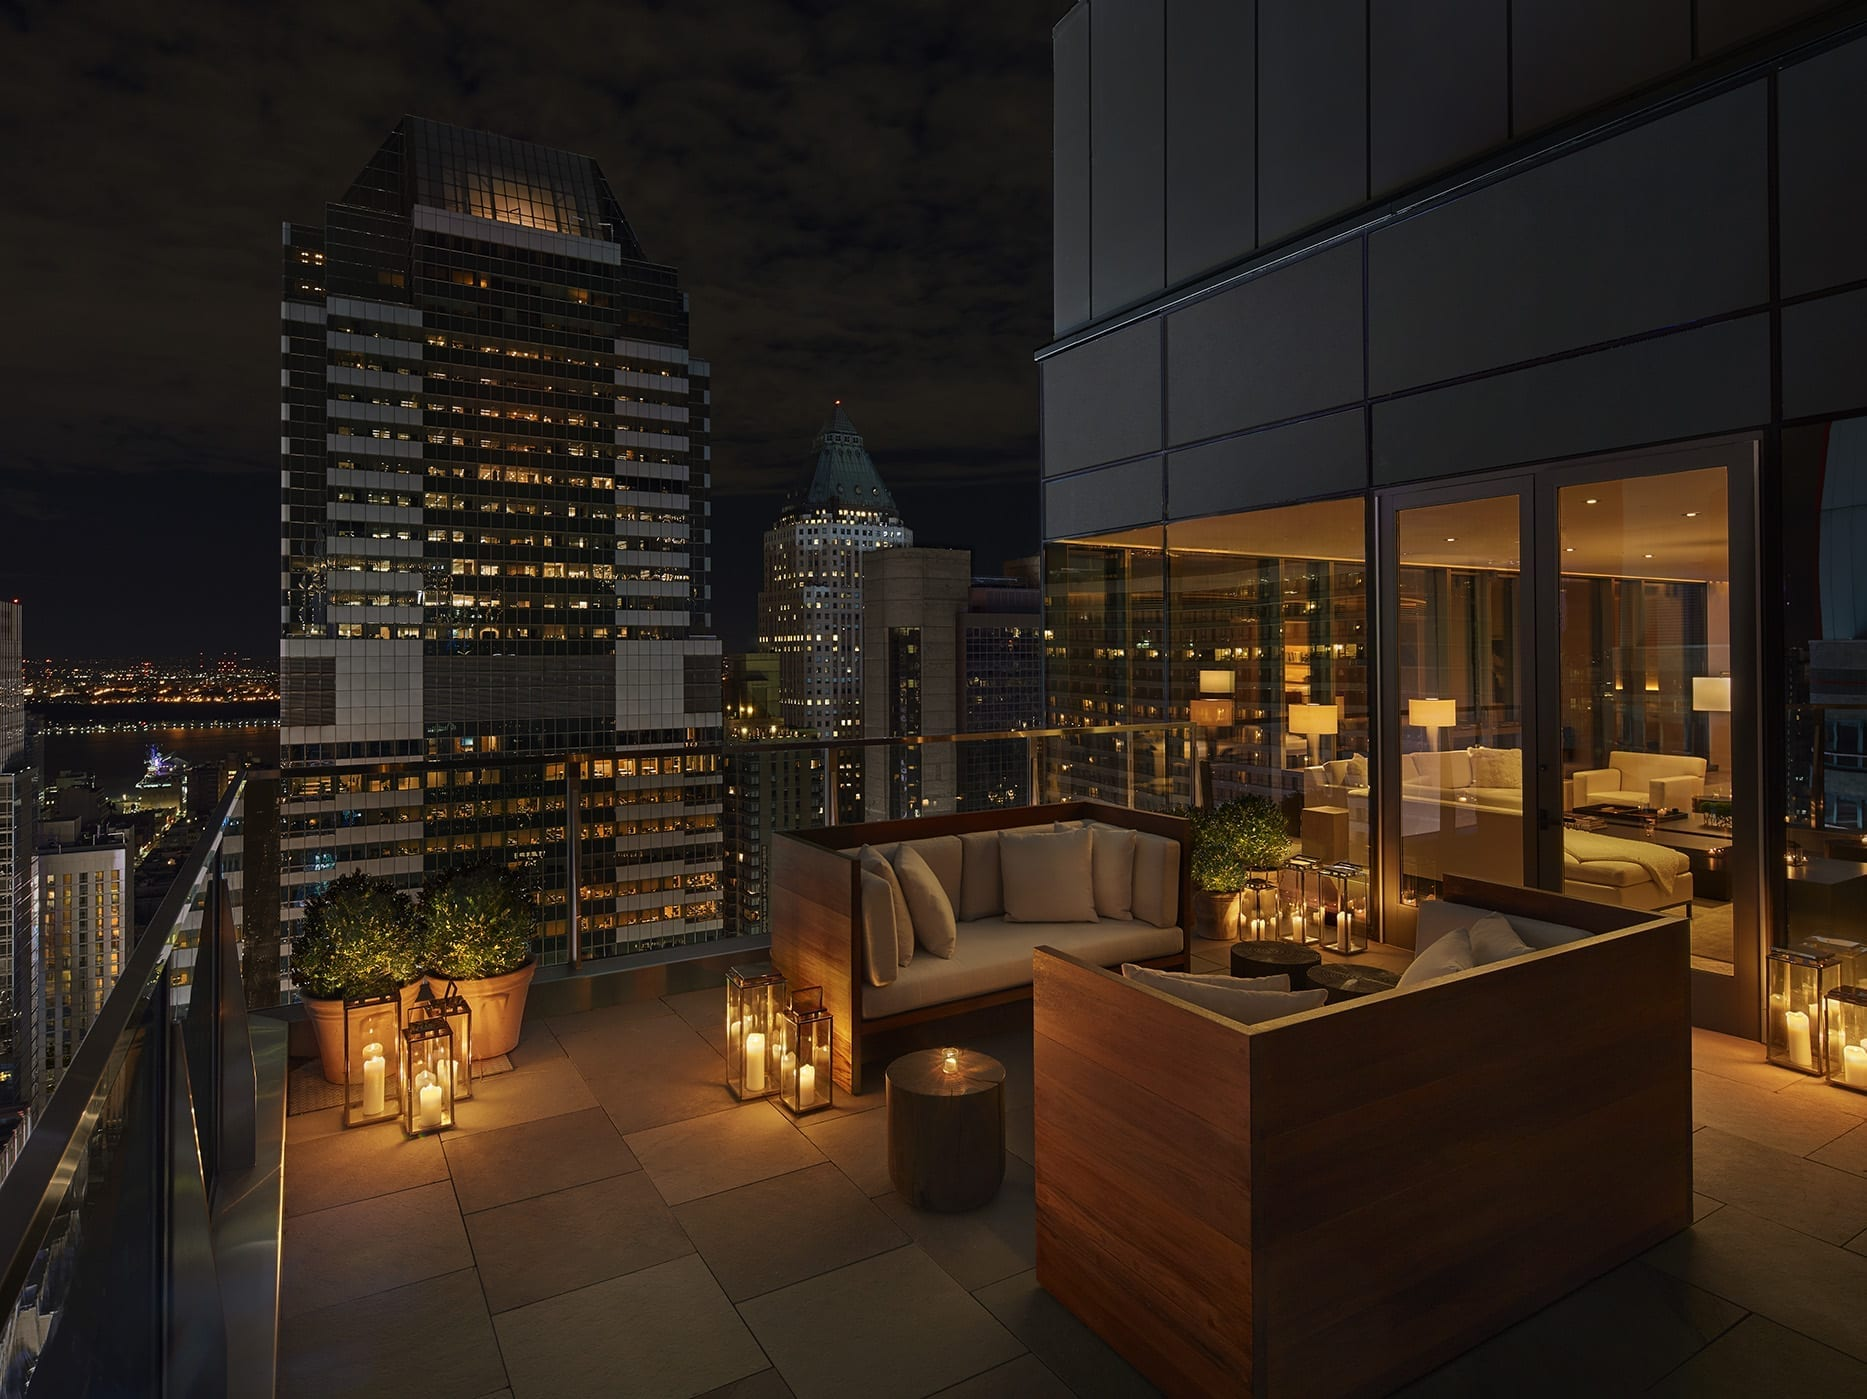 Penthouse terrace at The Times Square Edition